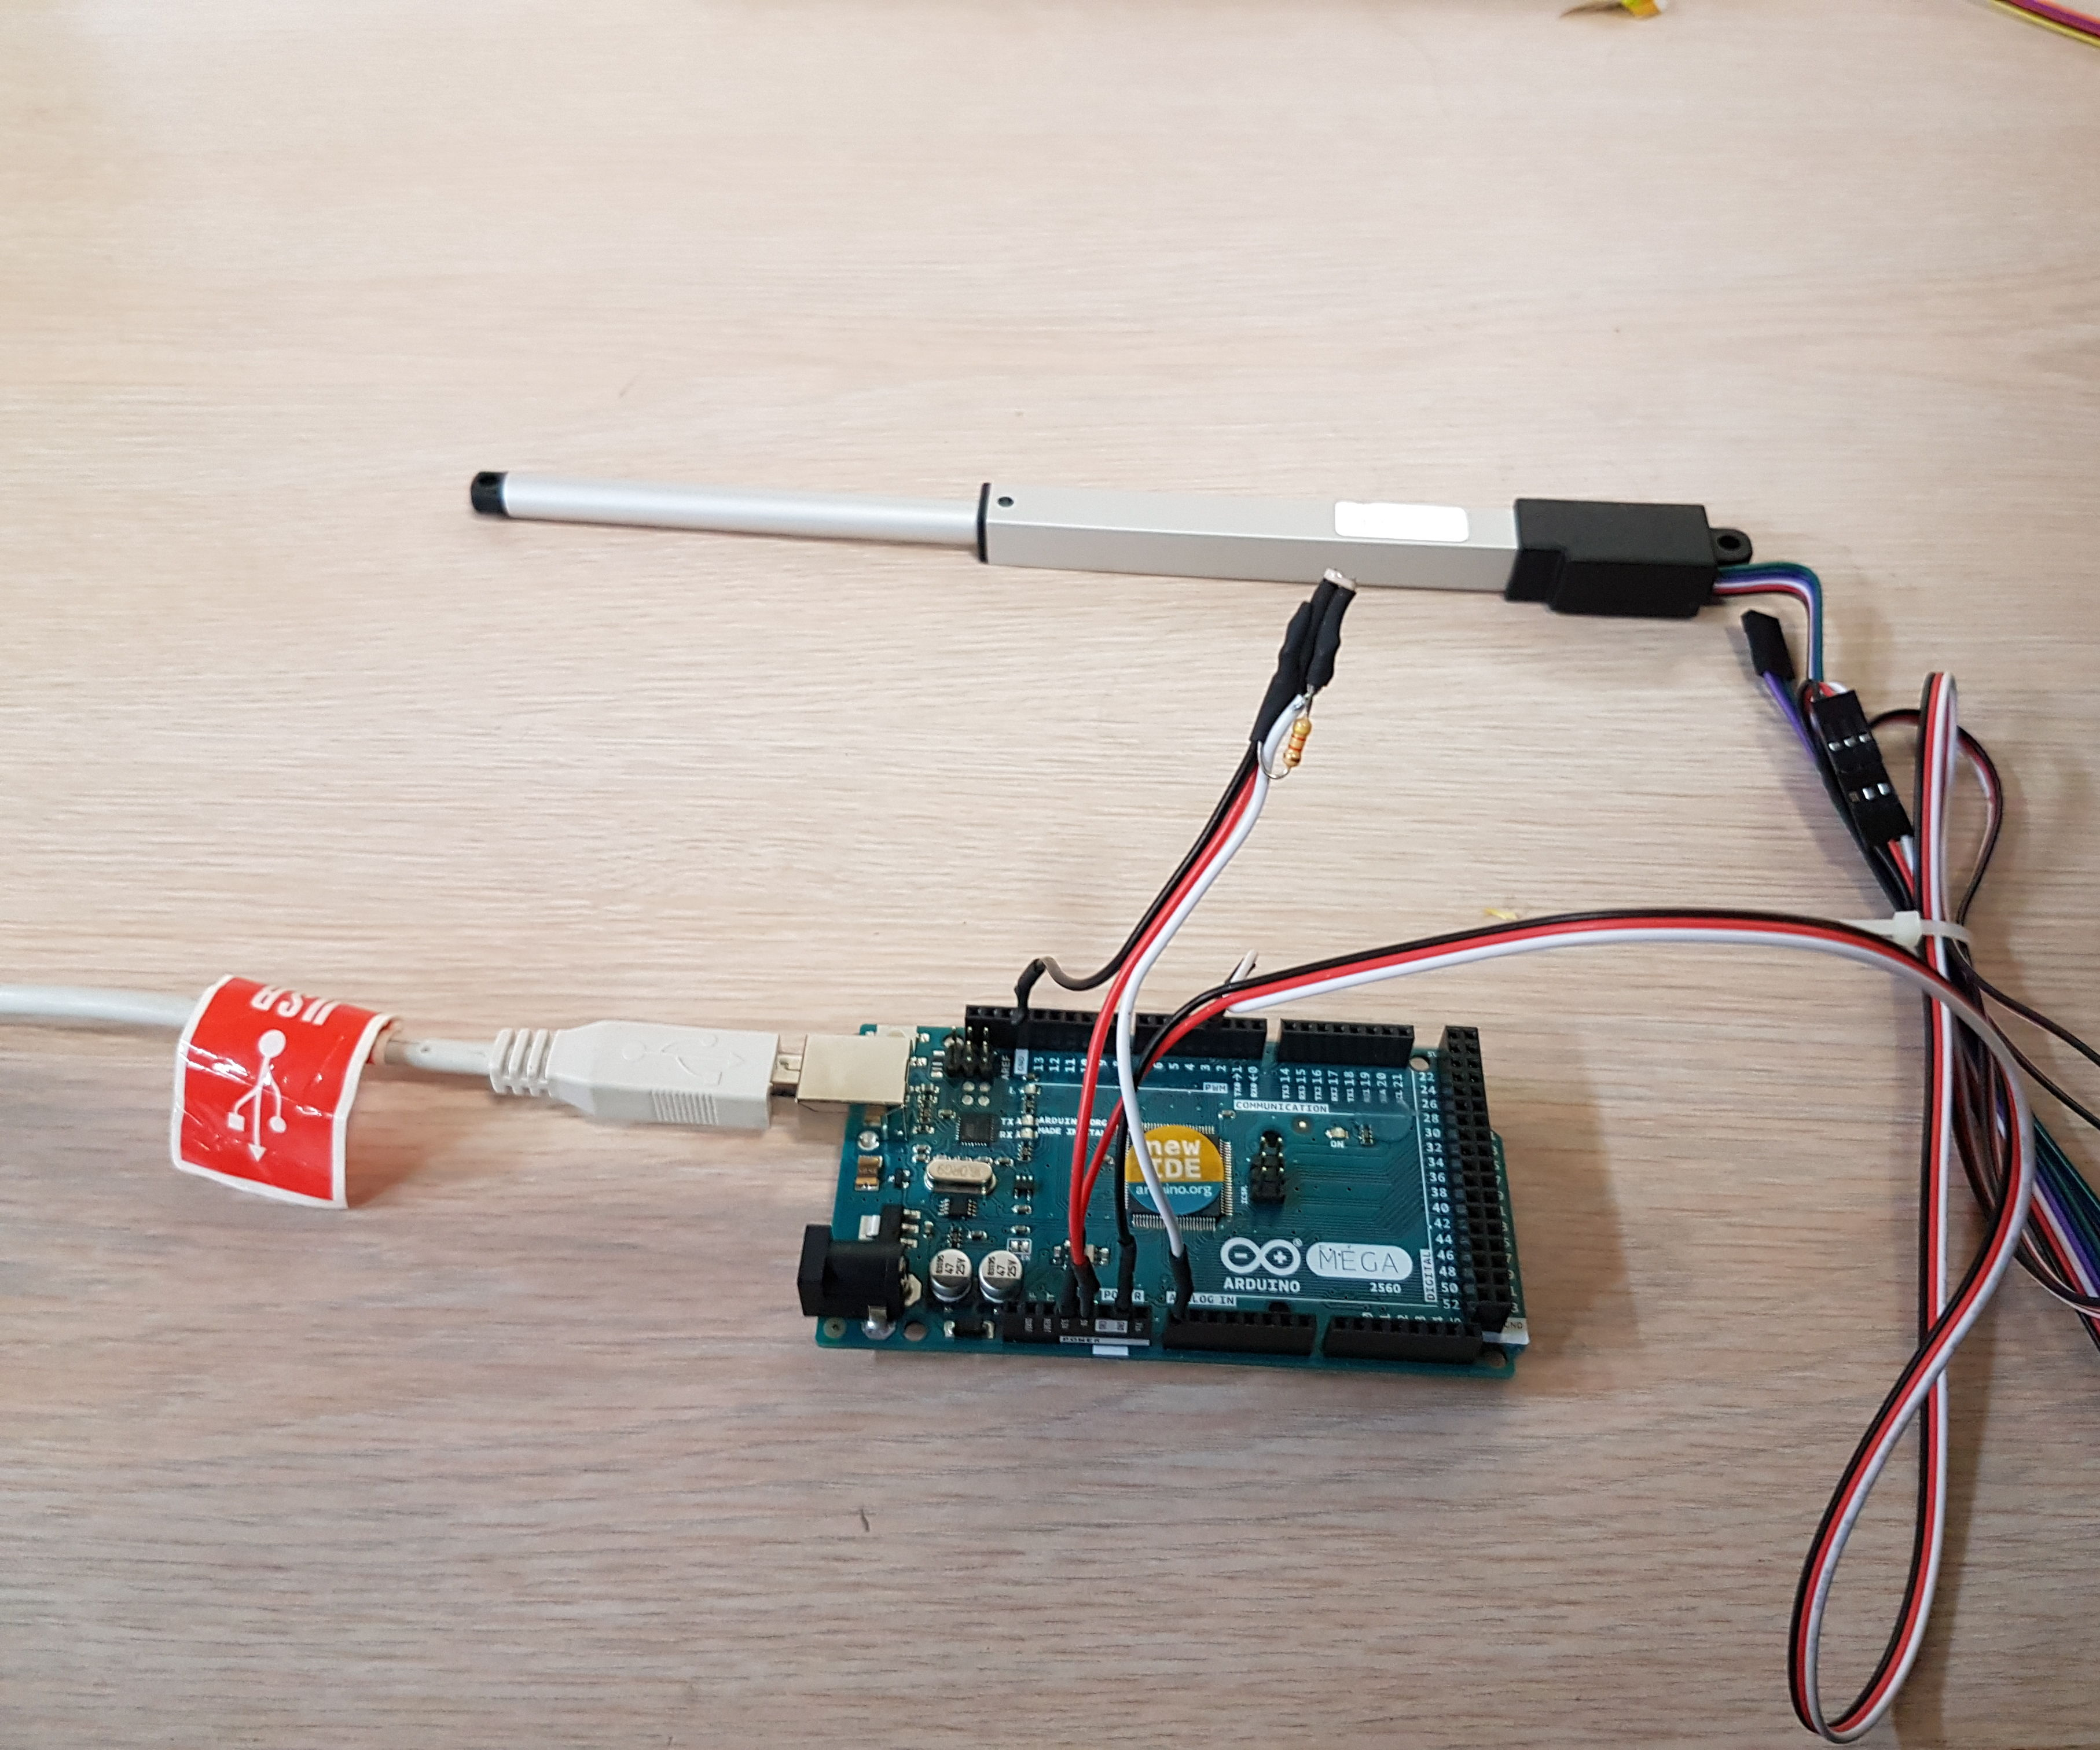 Using a Linear Actuator with Arduino and Photoresistor